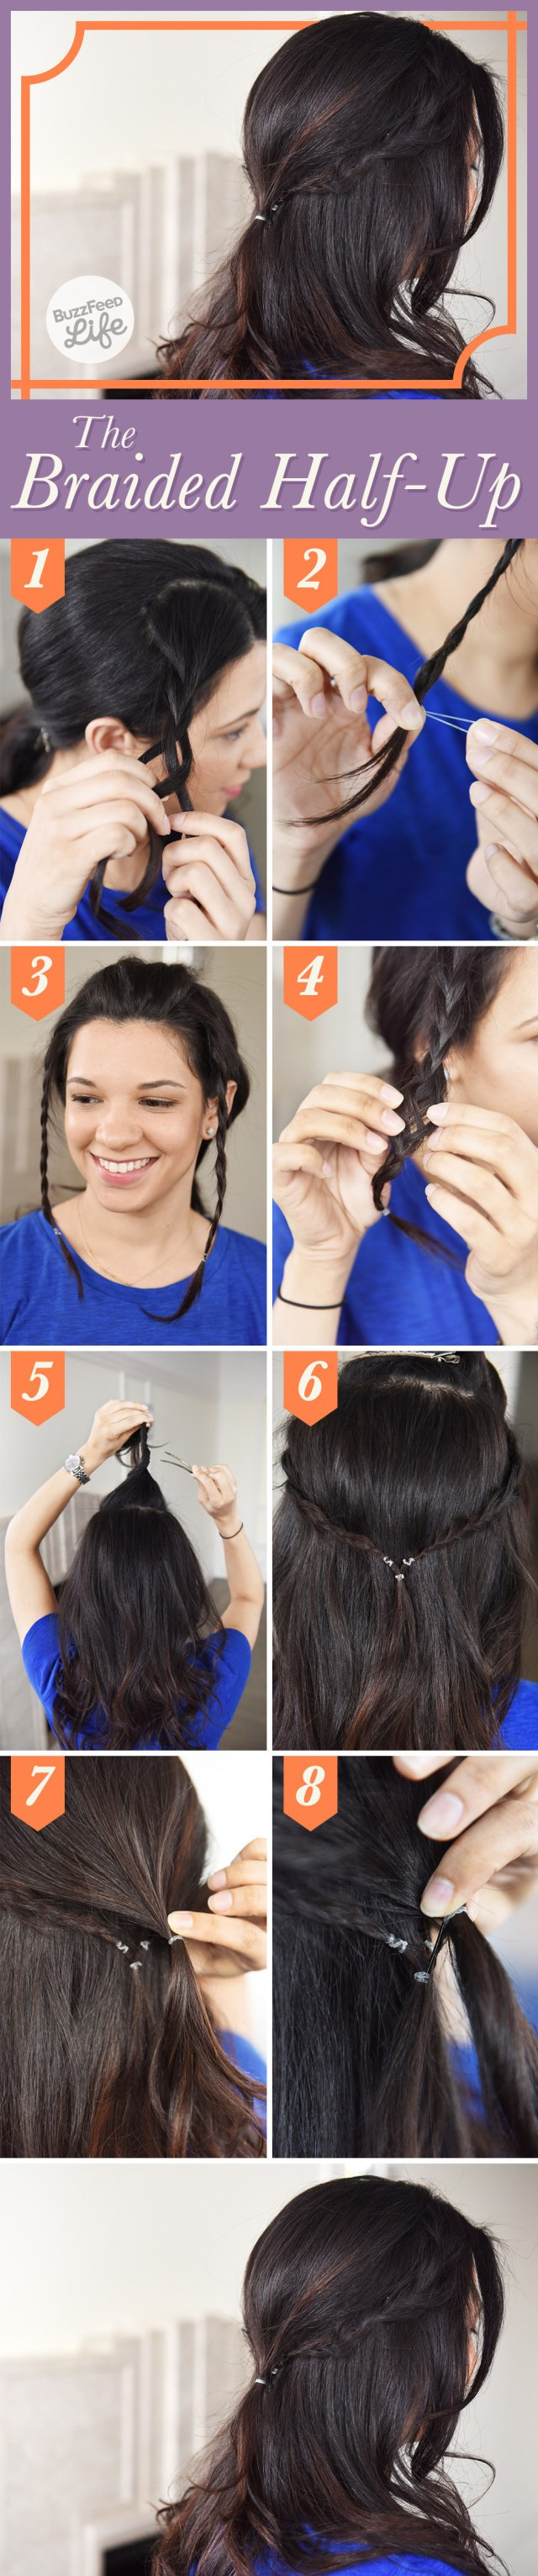 26 incredible hairstyles you can learn in 10 steps or less